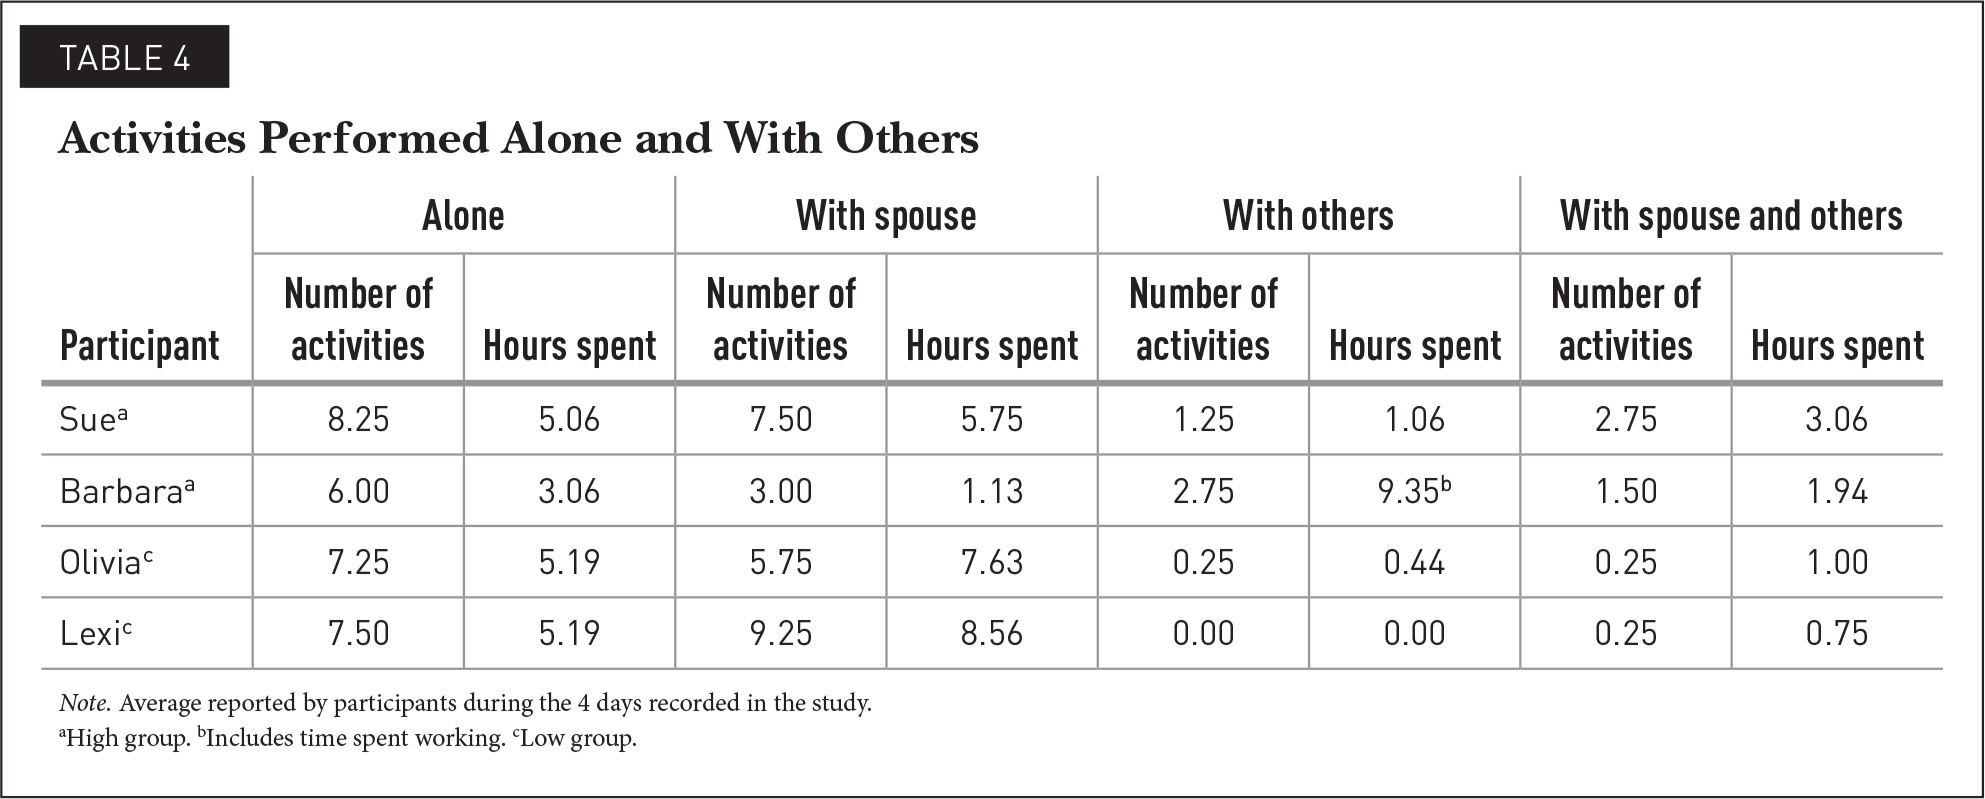 Activities Performed Alone and With Others